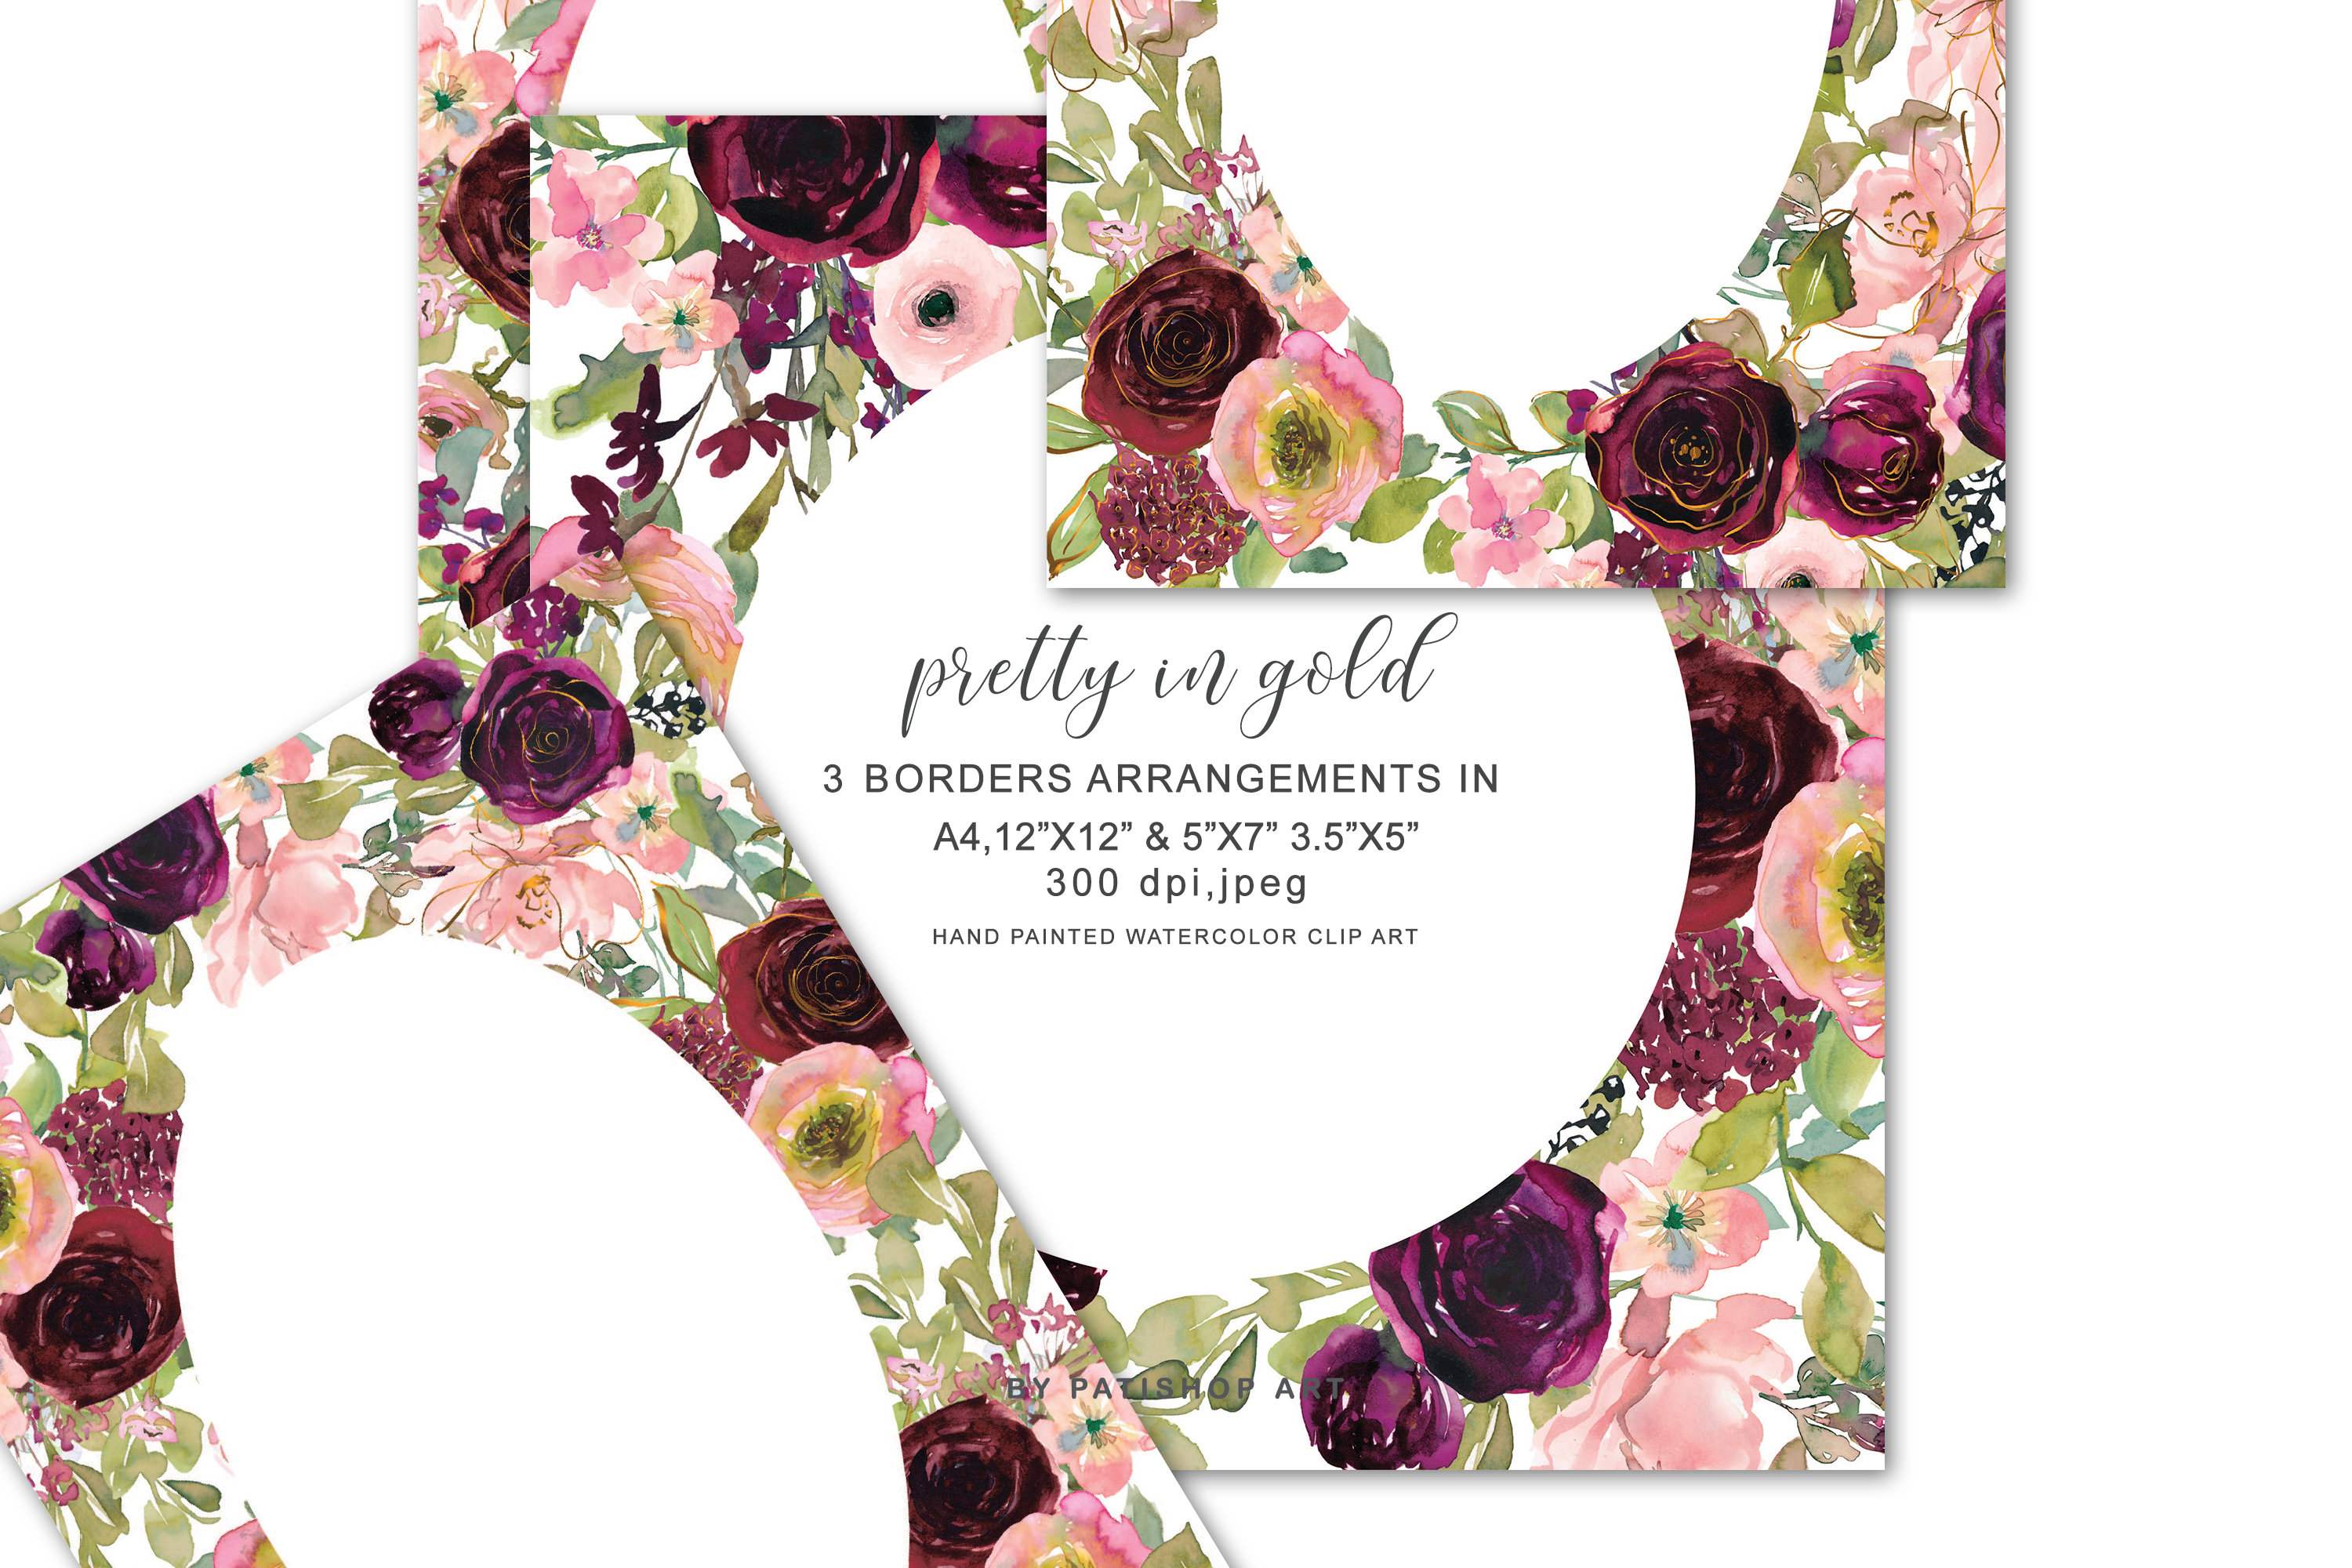 Download Free Floral Watercolor Border Arrangements Graphic By Patishop Art for Cricut Explore, Silhouette and other cutting machines.